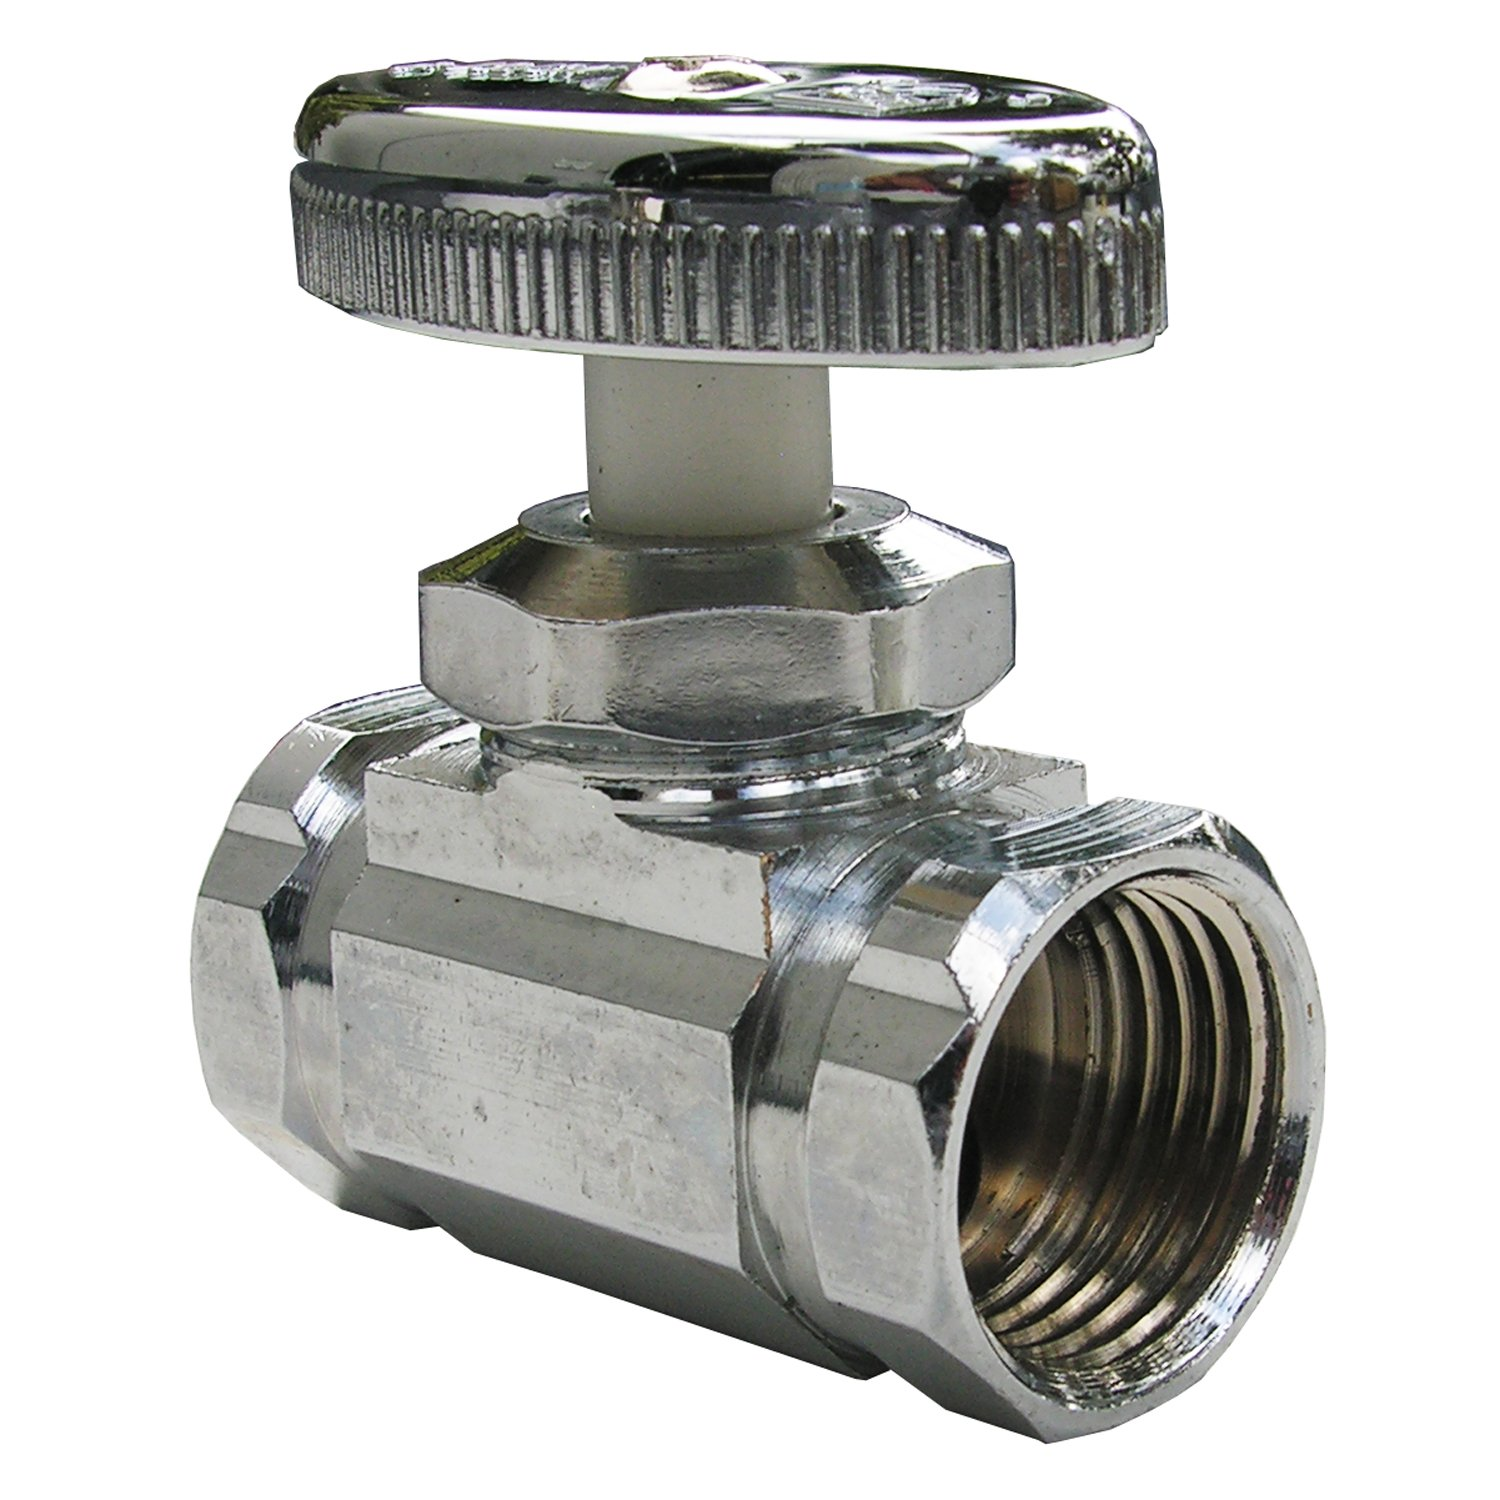 LASCO 06-7217 Straight Stop Valve, Standard Duty, 1/2-Inch Iron Pipe Inlet X 1/2-Inch Iron Pipe Outlet, Chrome by LASCO